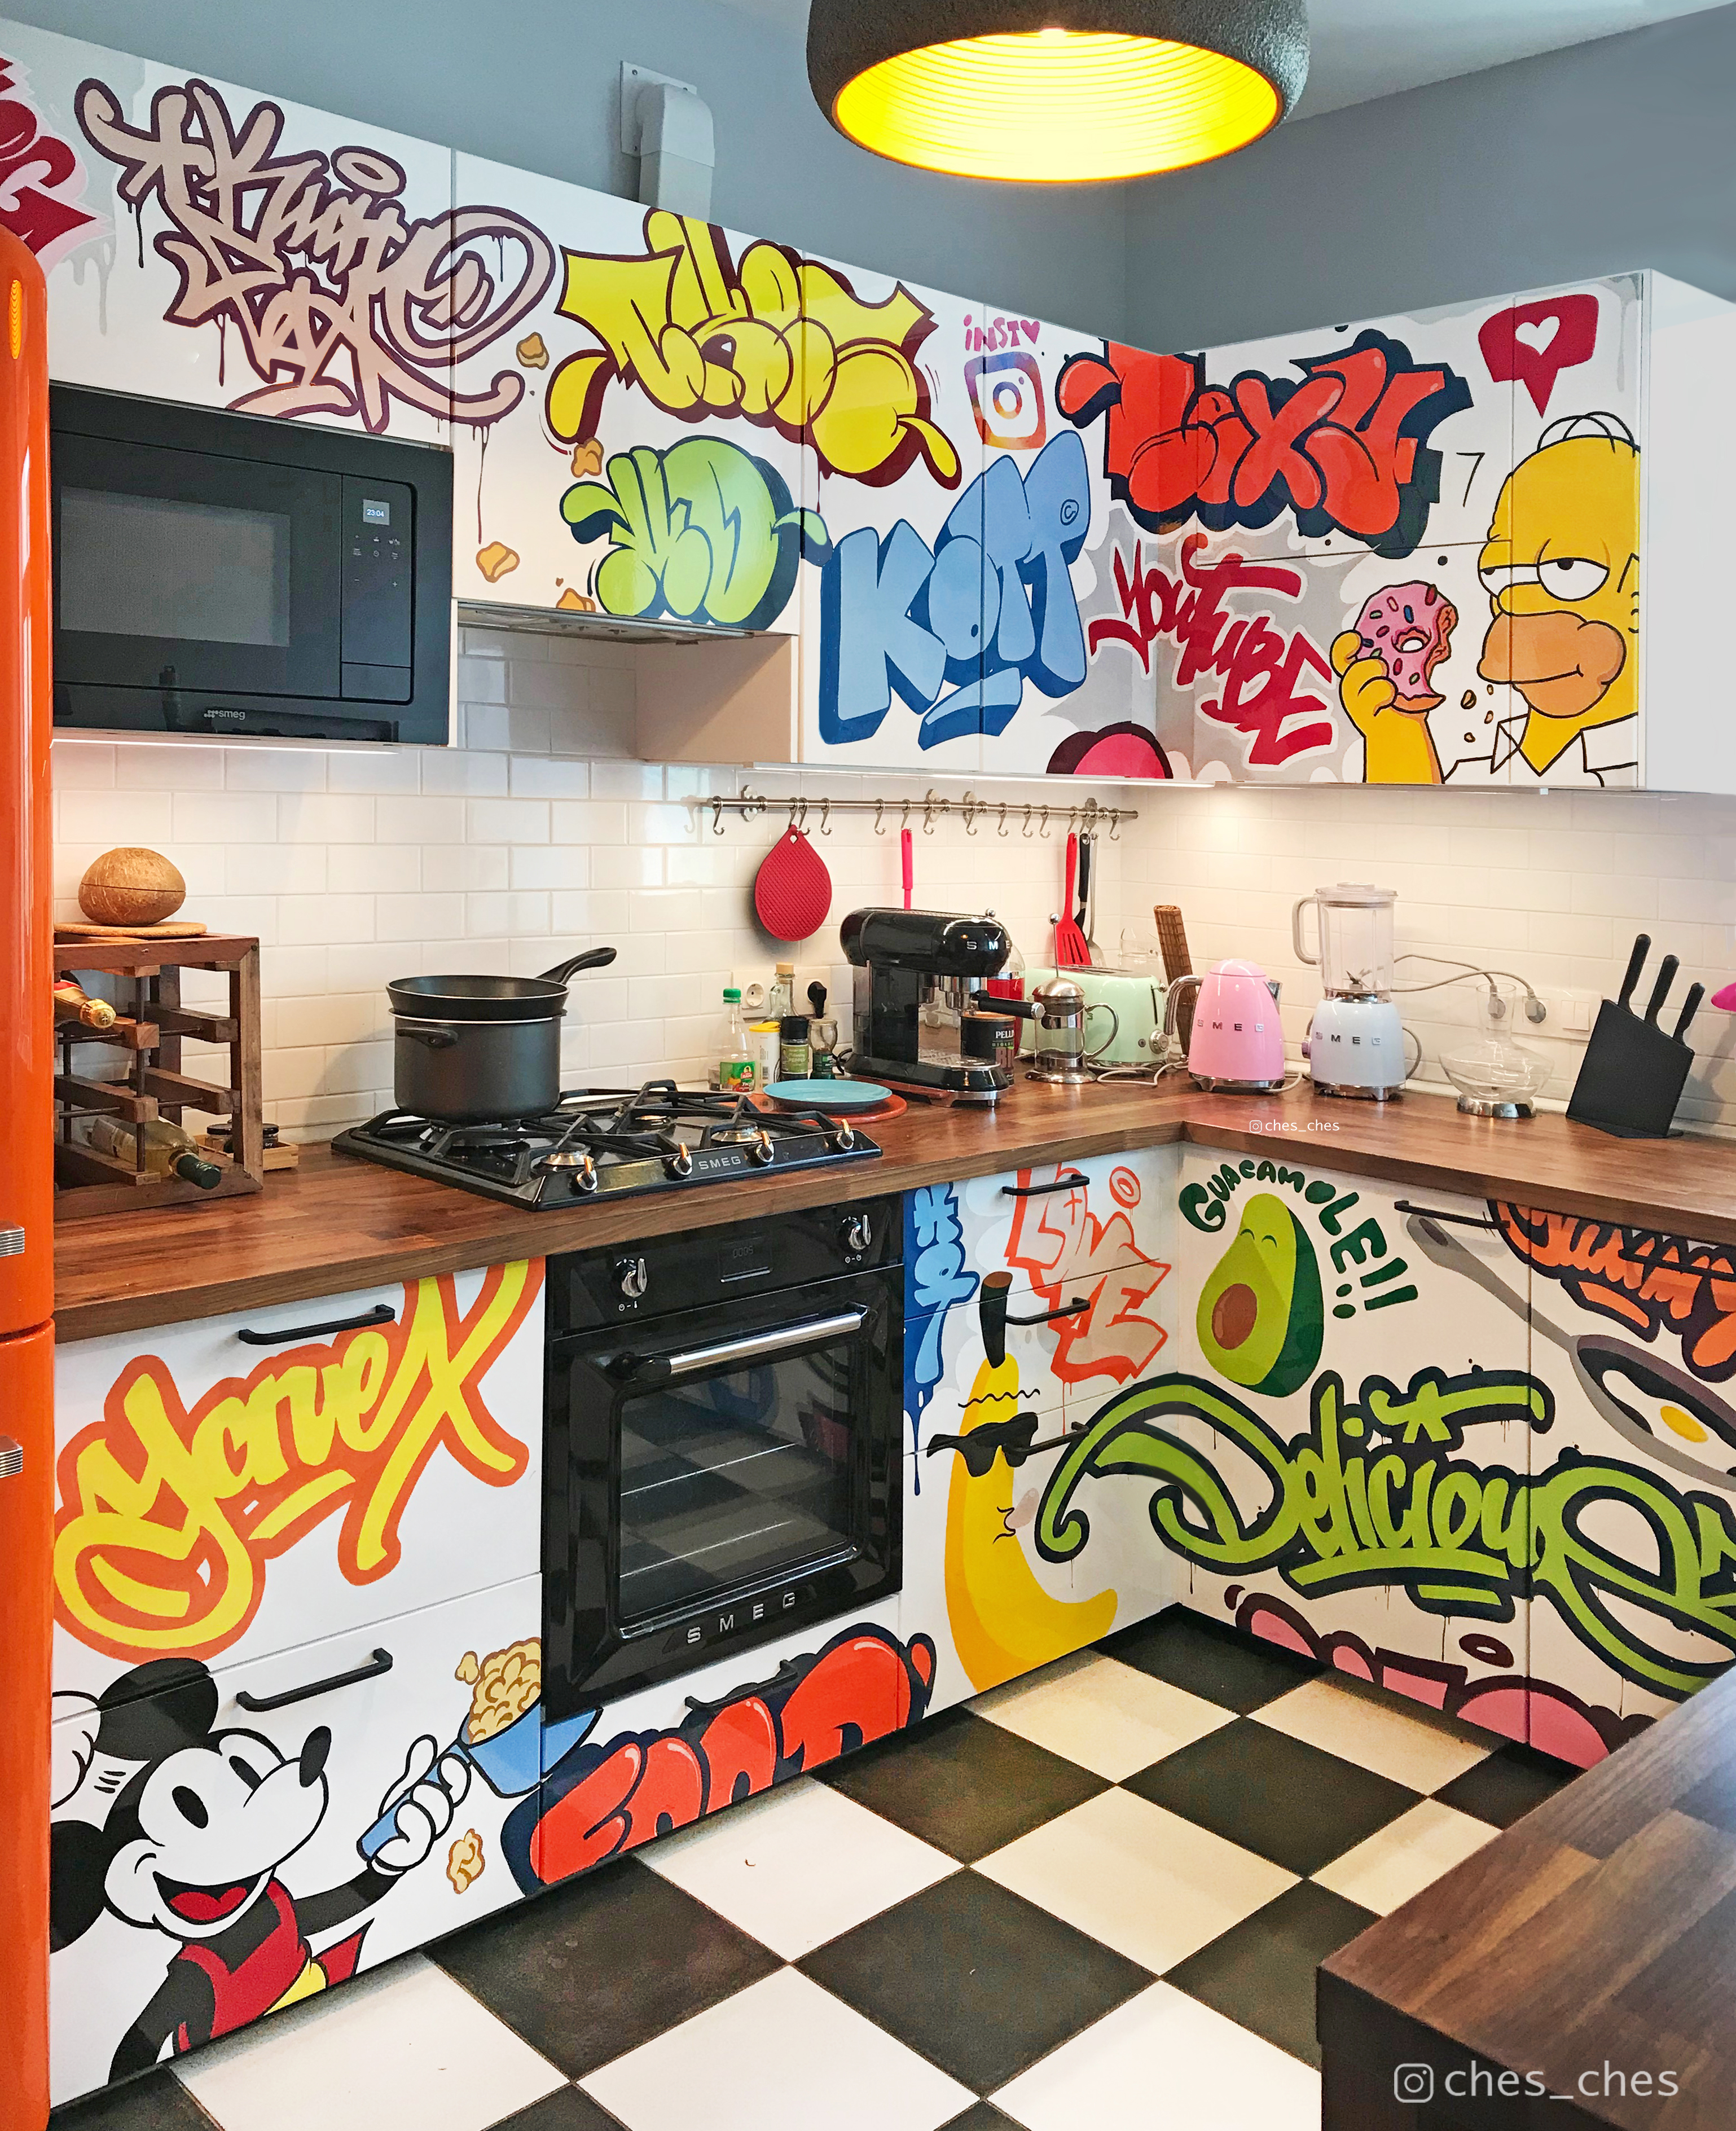 I Made Funny Graffiti Artwork In The Kitchen For My Friend